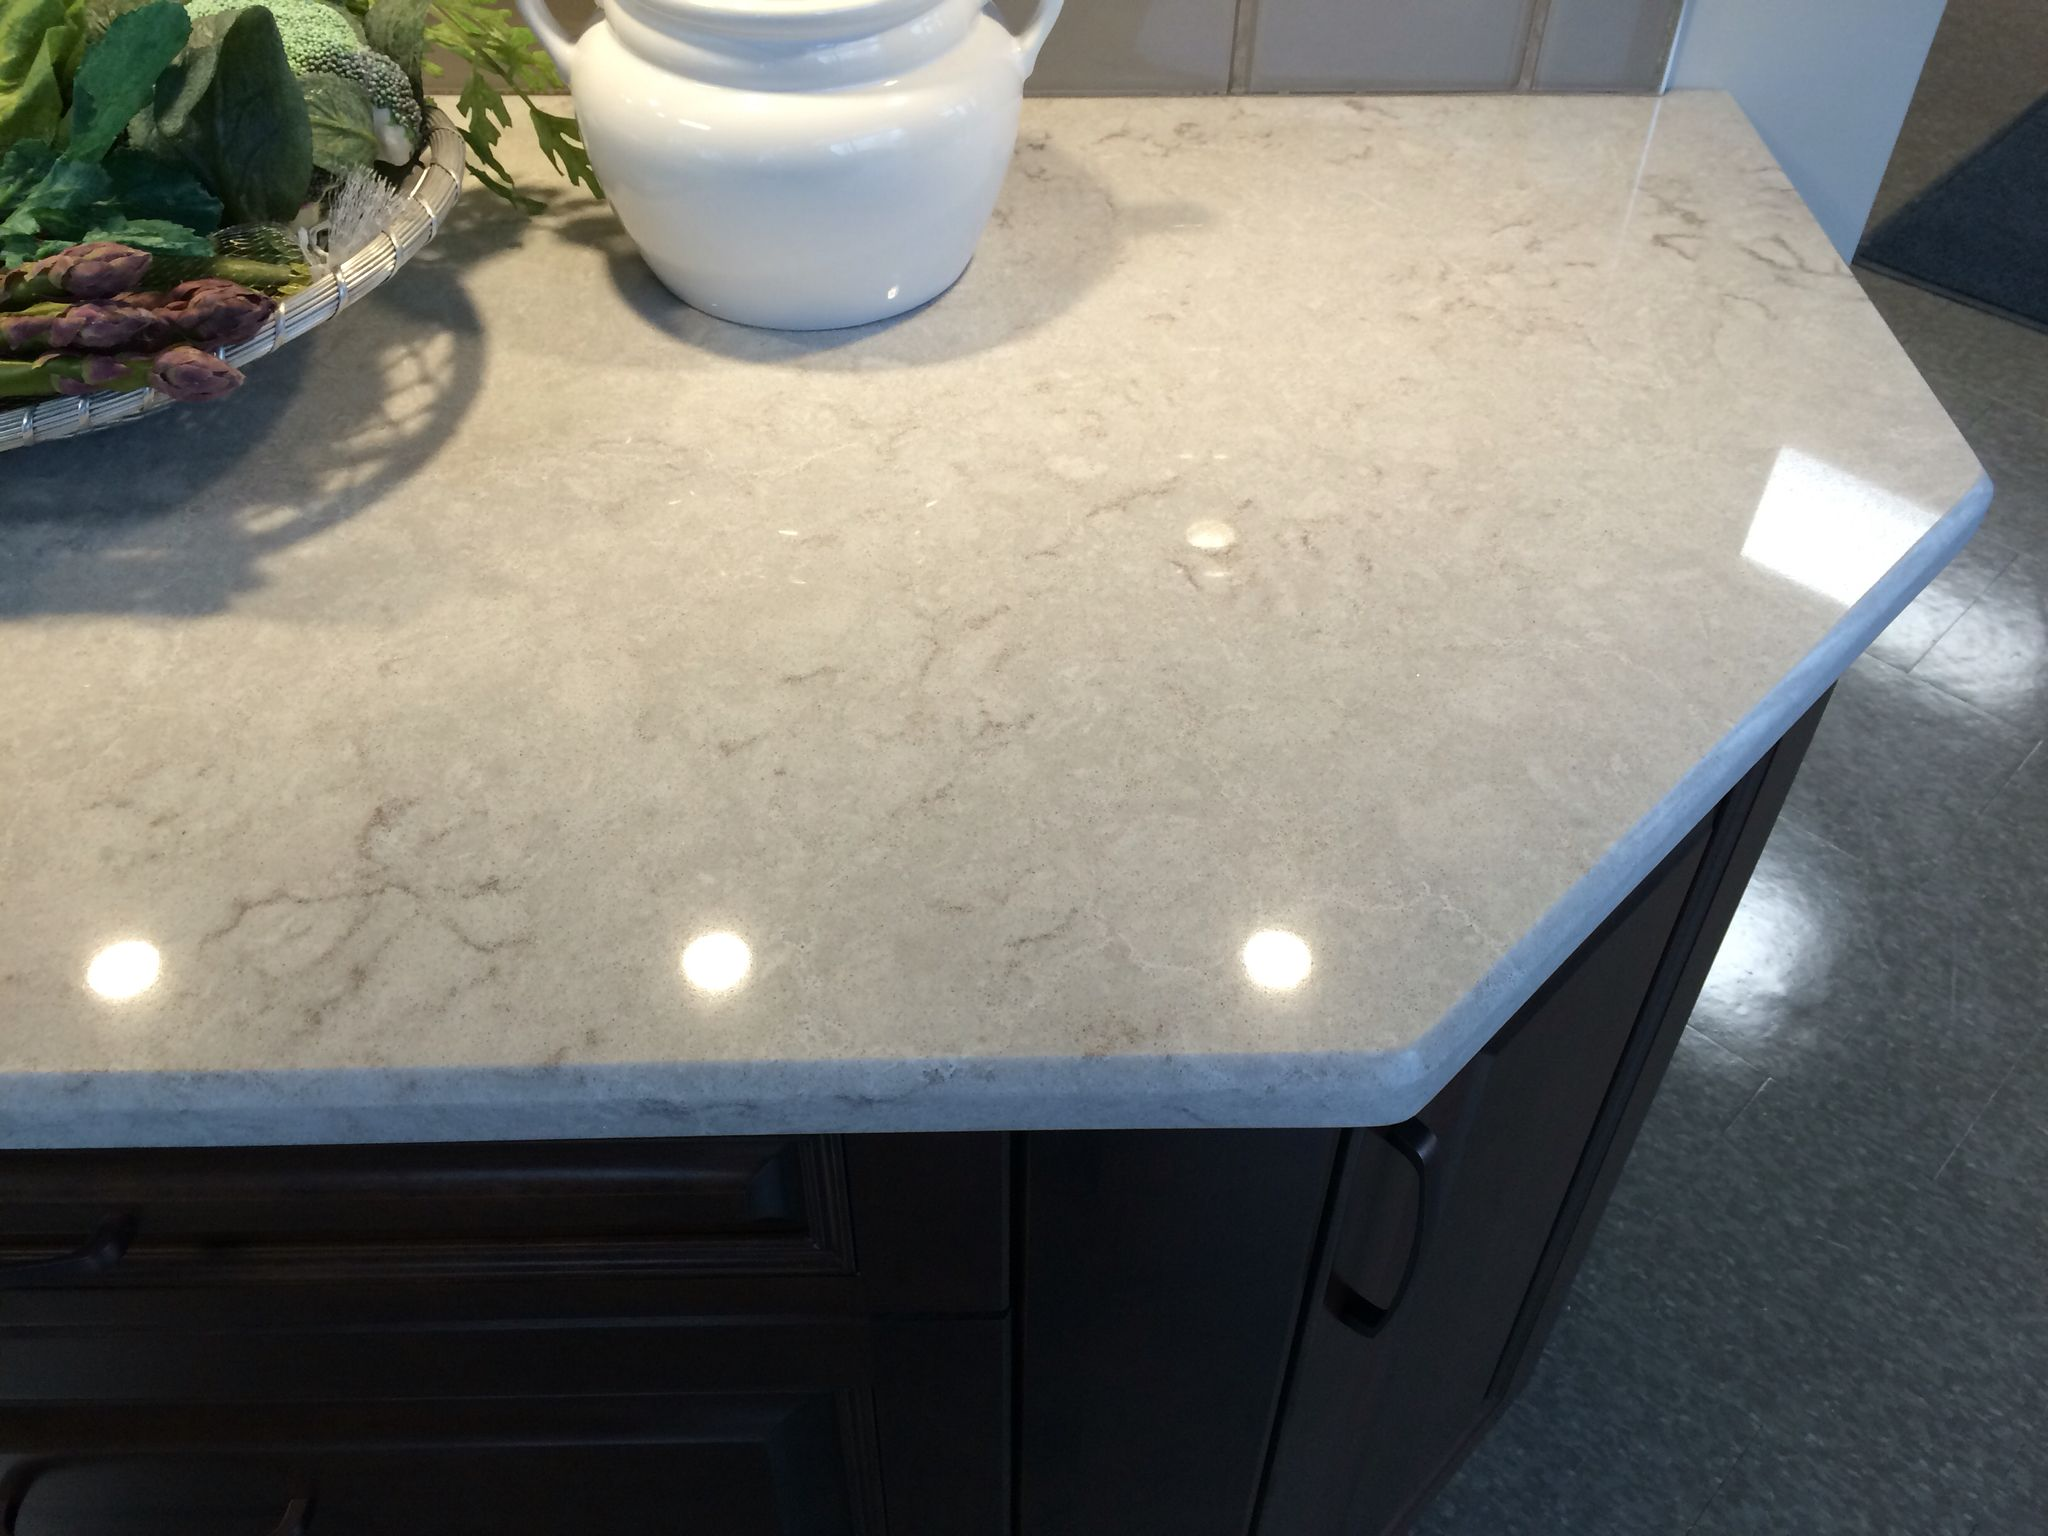 Kitchen Counter Caesarstone Bianco Drift Quartz Kitchen Countertops Kitchen And Kitchenette Caesarstone Kitchen